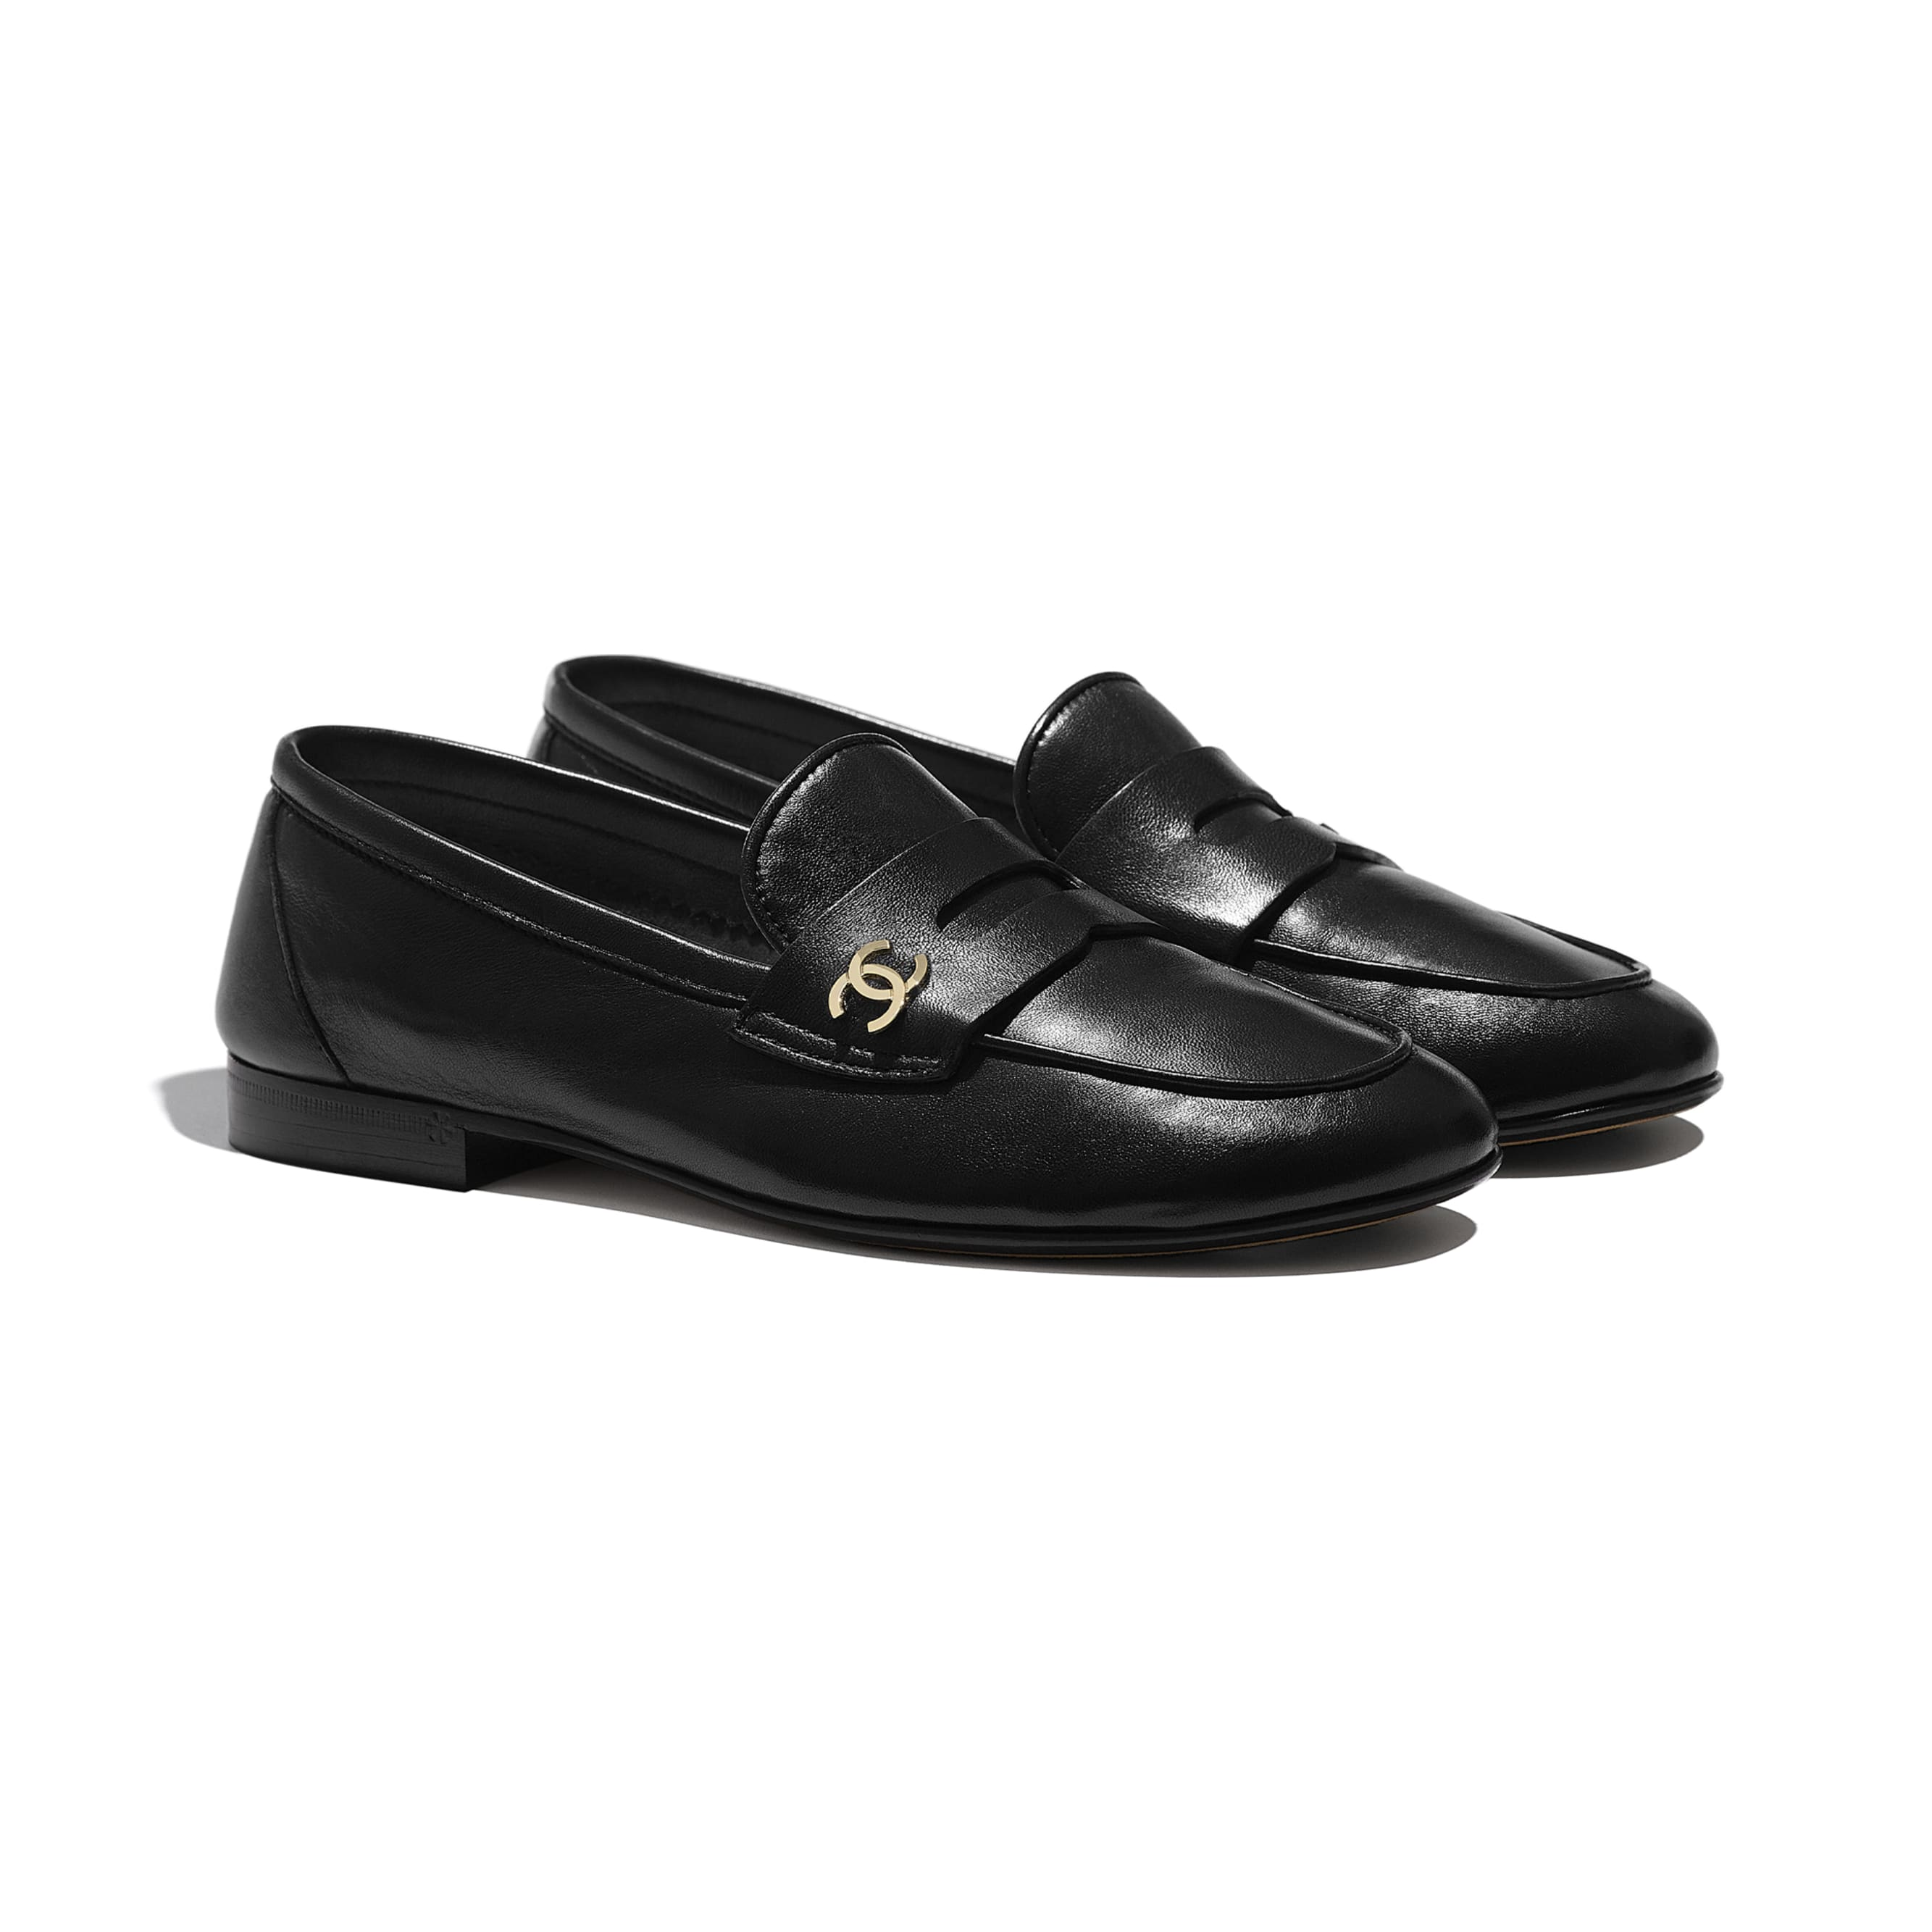 Loafers - Black - Lambskin - CHANEL - Alternative view - see standard sized version